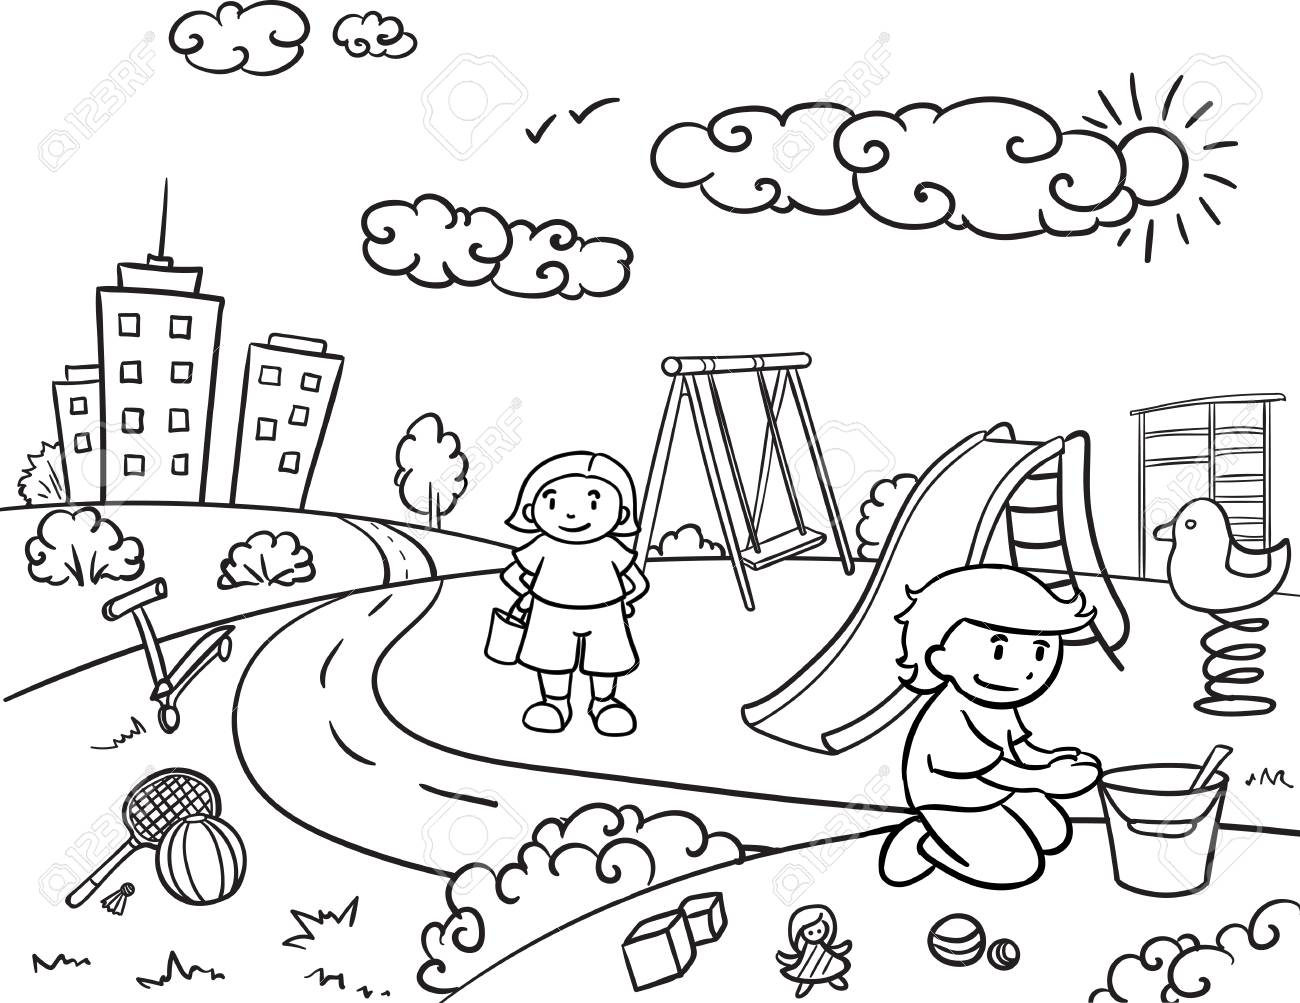 sketch children active outdoor recreation concept with kids playing